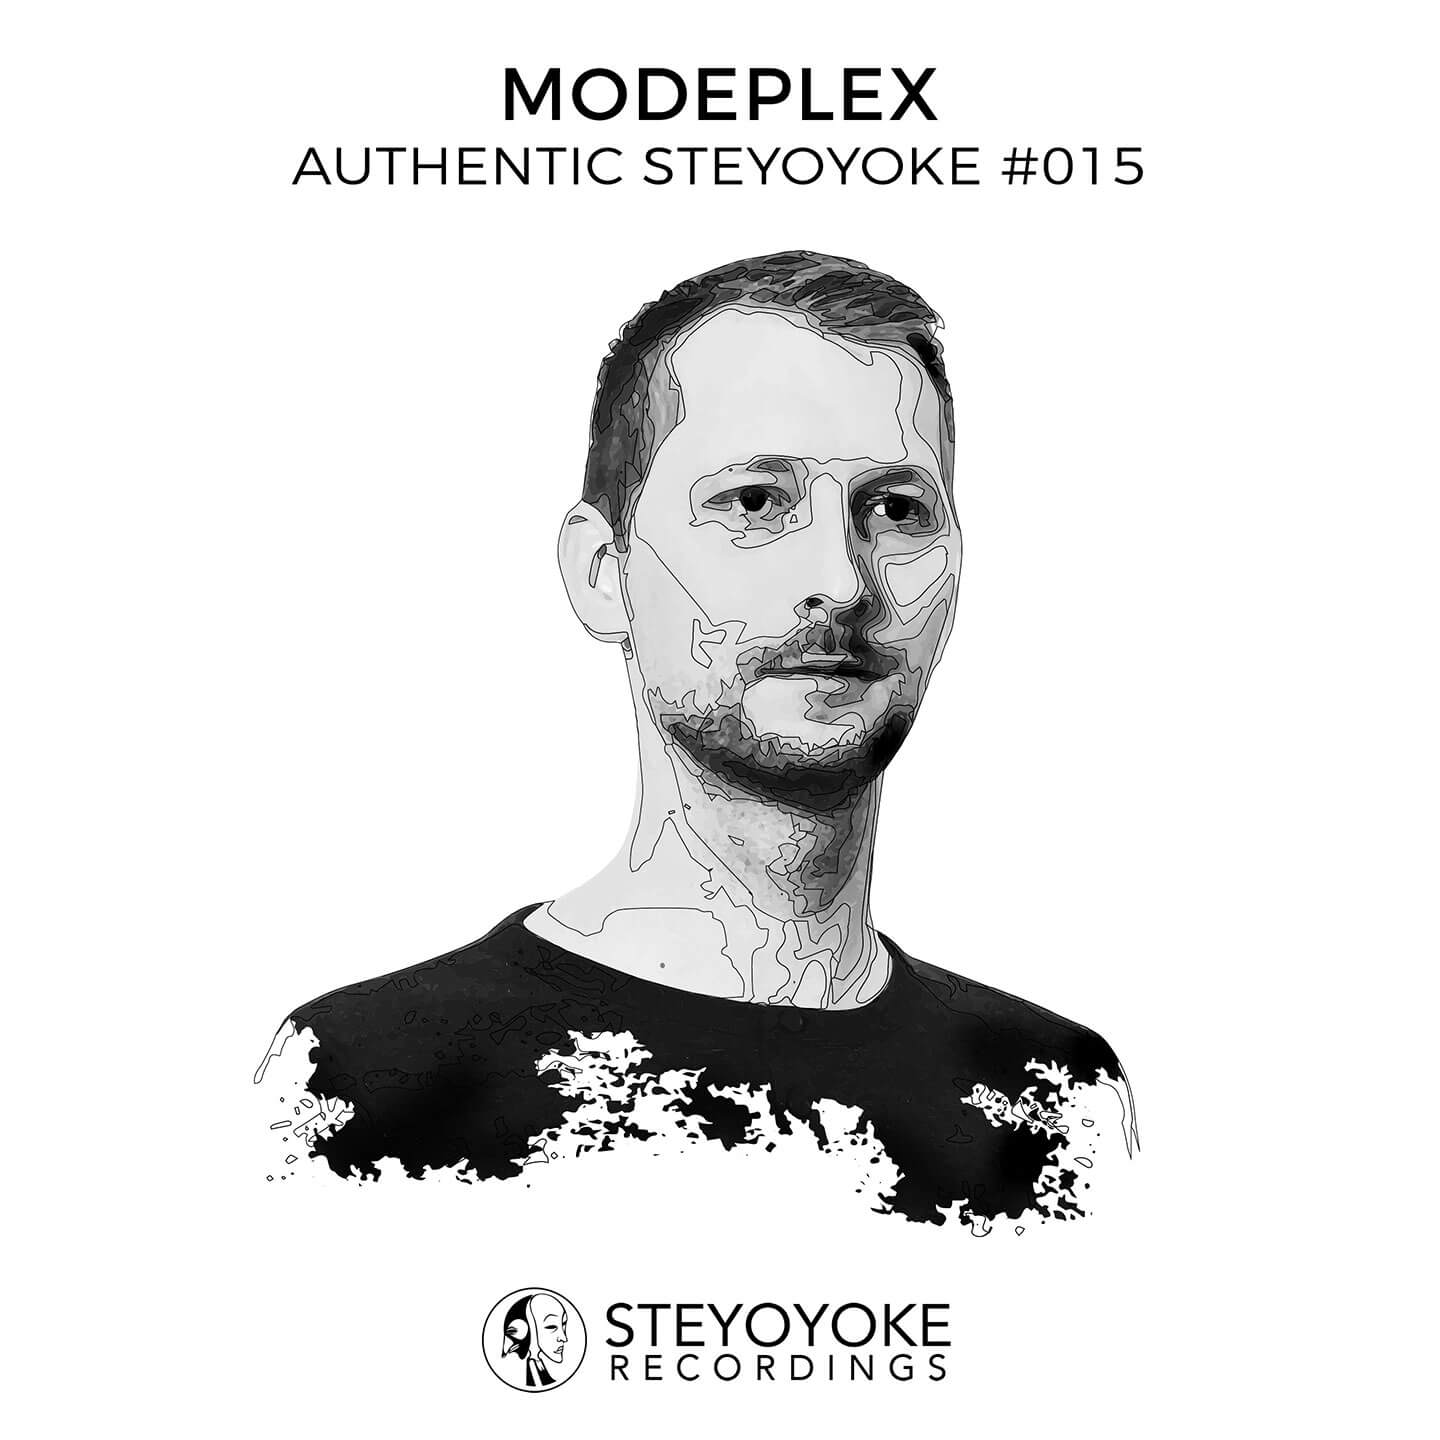 SYYKAS015_Authentic Steyoyoke by Modeplex